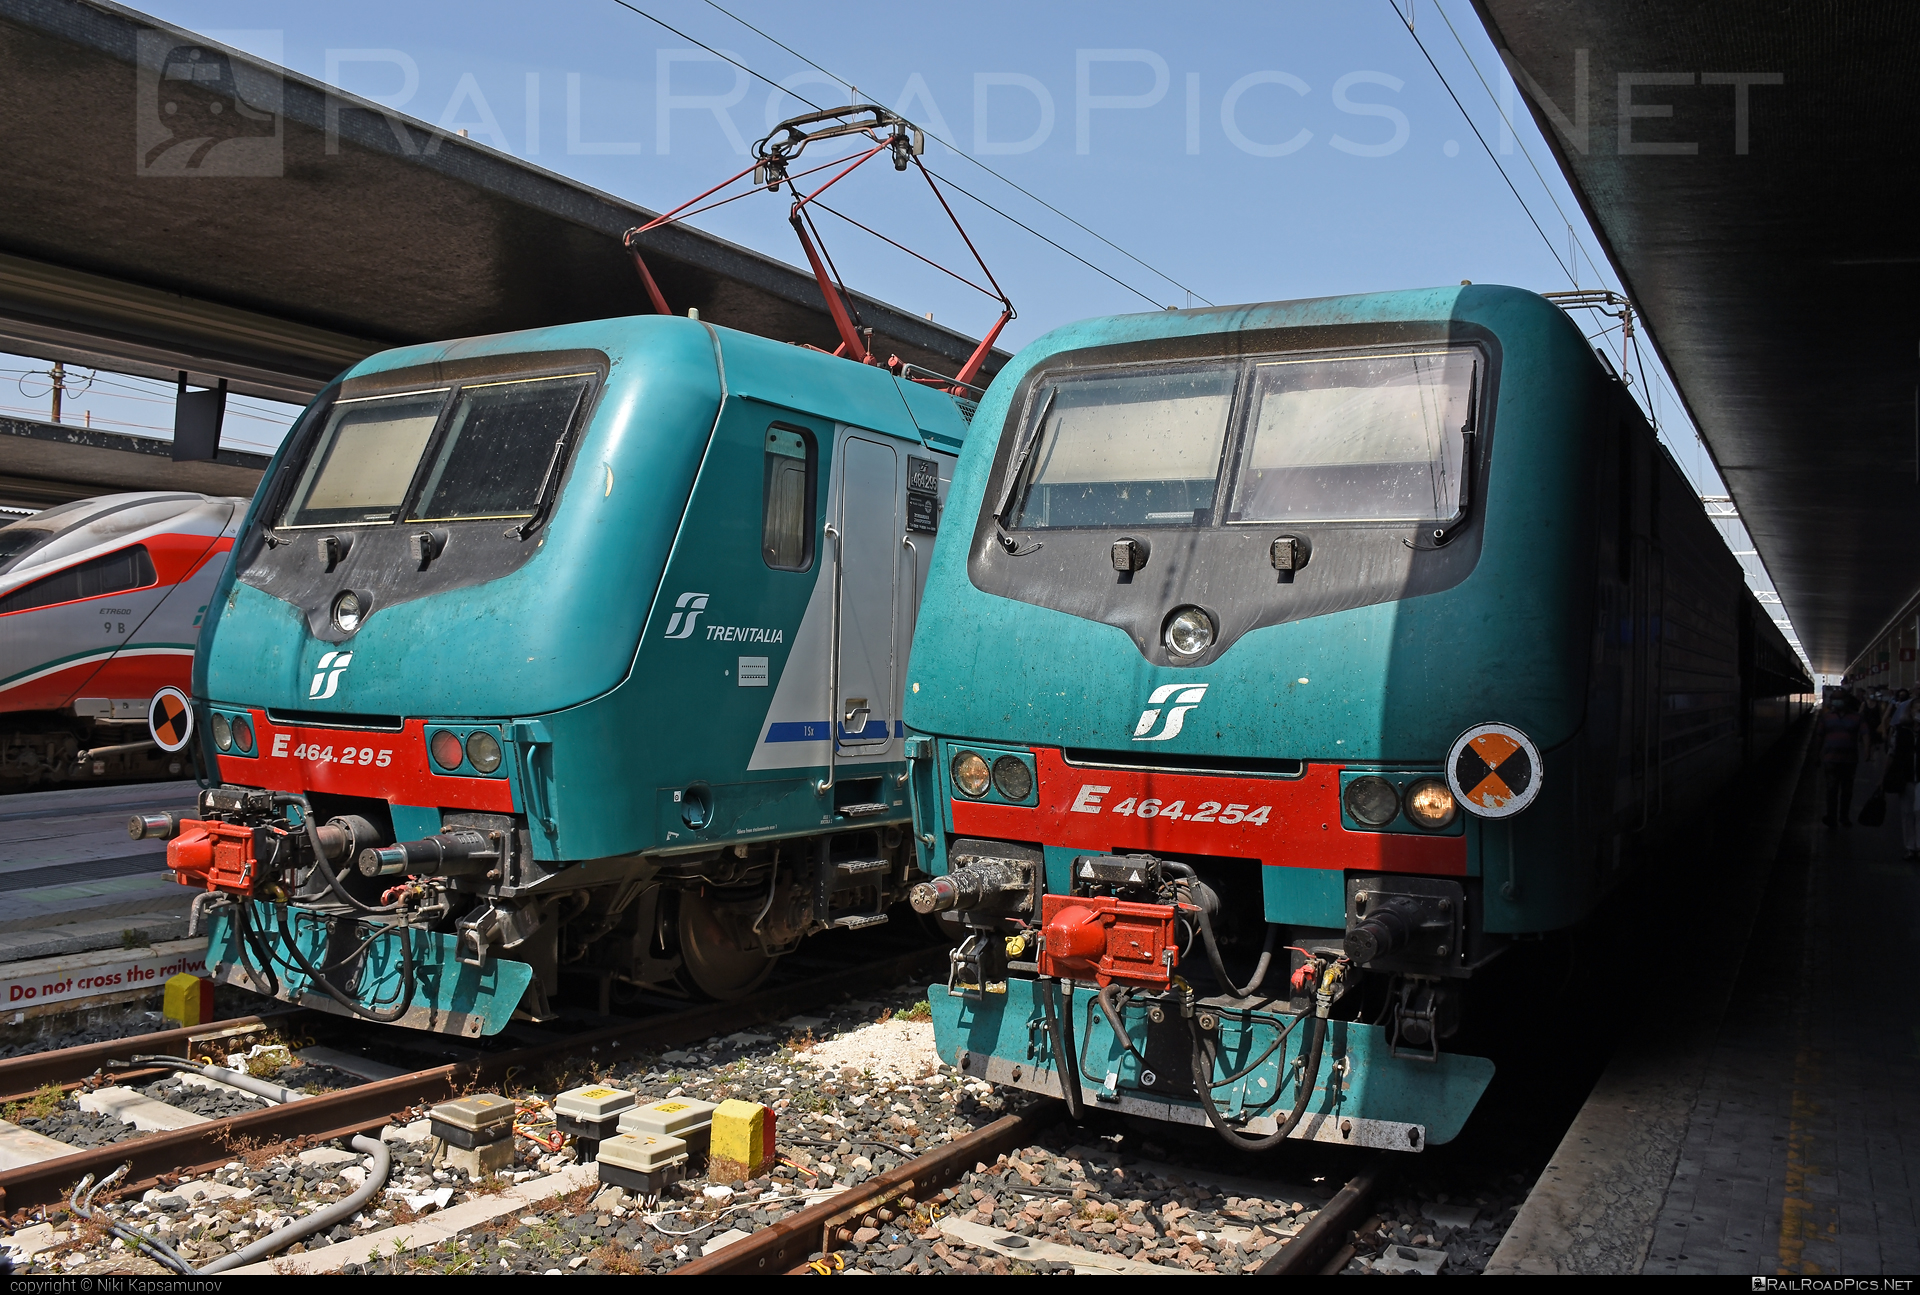 Bombardier TRAXX P160 DCP - E 464.254 operated by Trenitalia S.p.A. #bombardier #bombardiertraxx #traxx #traxxp160 #traxxp160dcp #trenitalia #trenitaliaspa